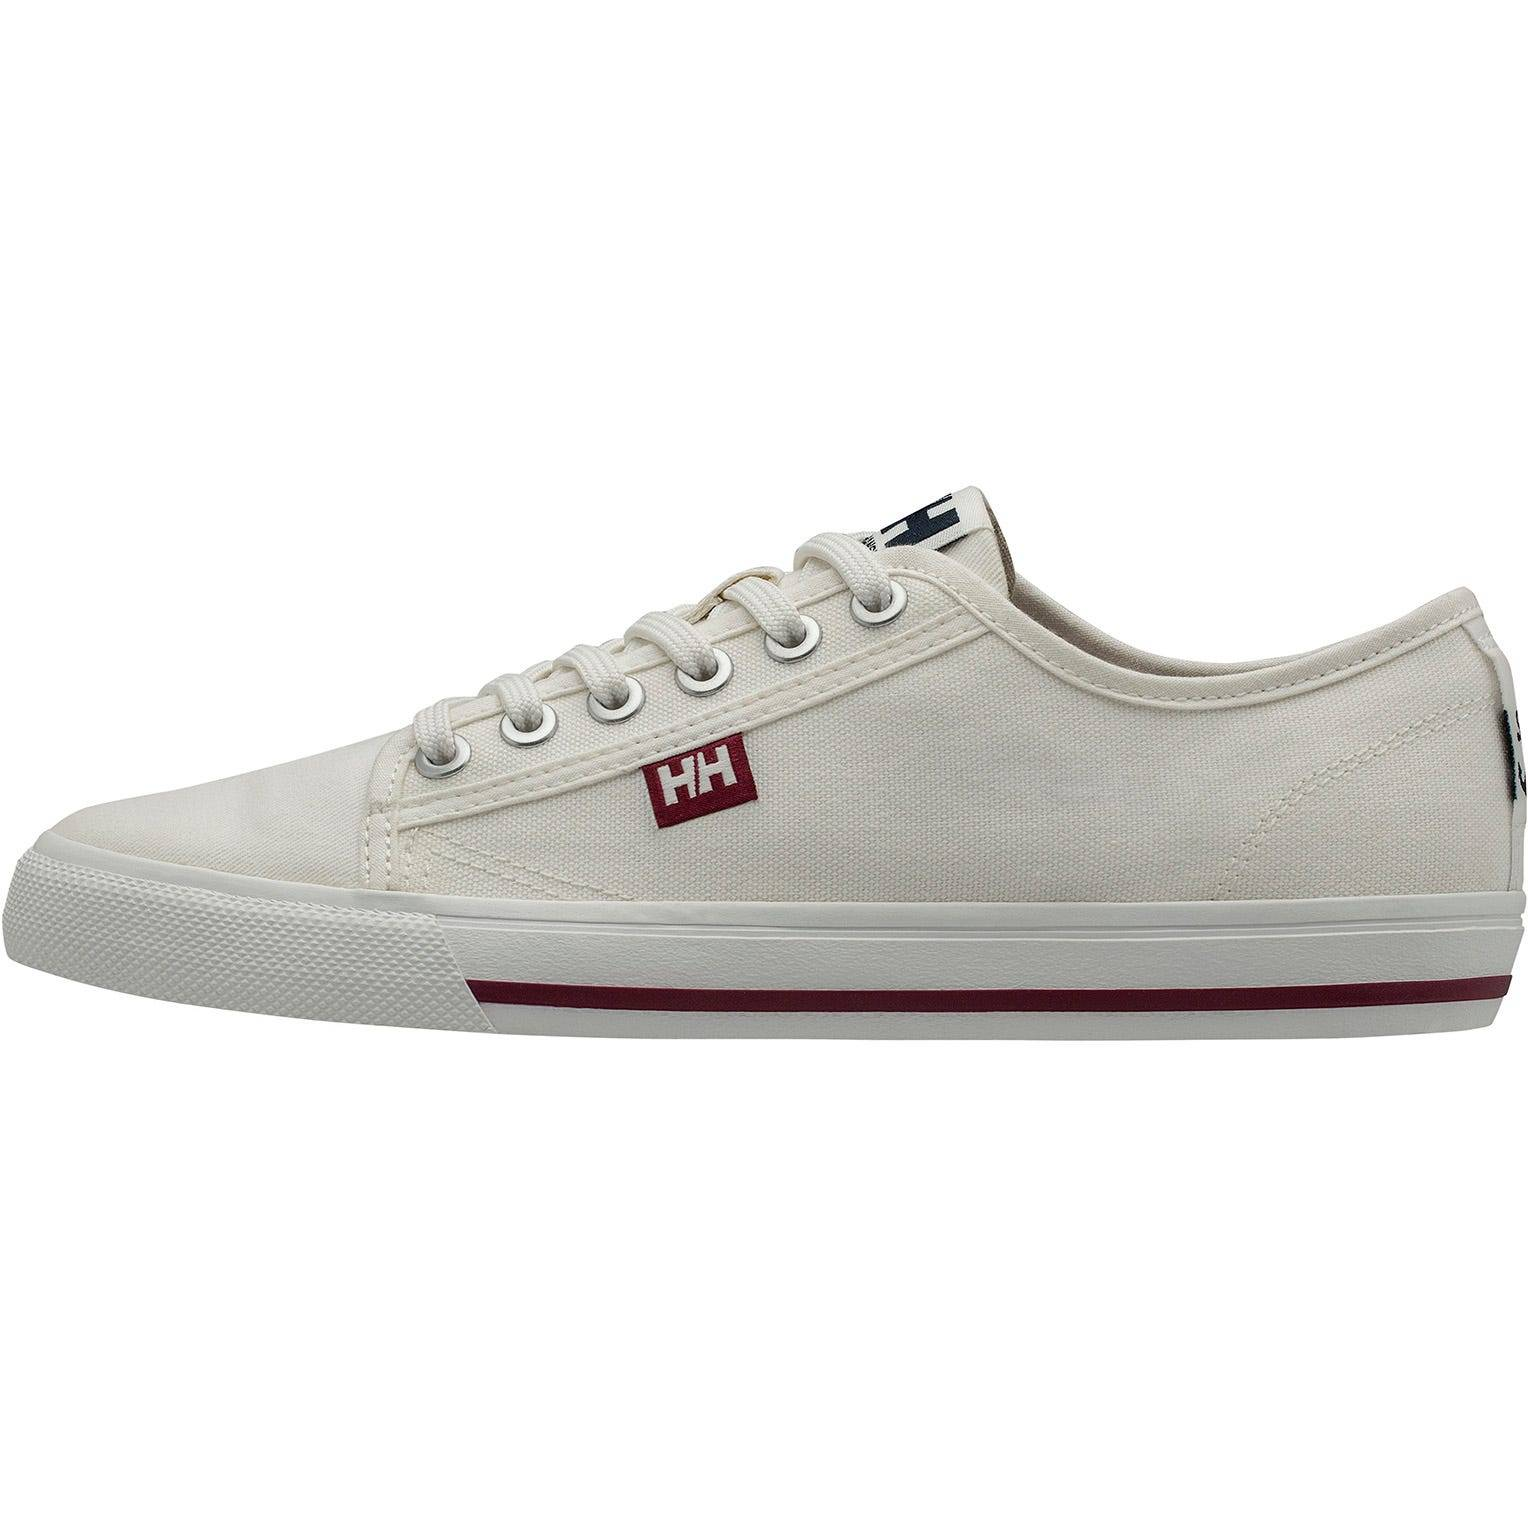 Helly Hansen W Fjord Canvas Shoe V2 Womens Casual White 41/9.5